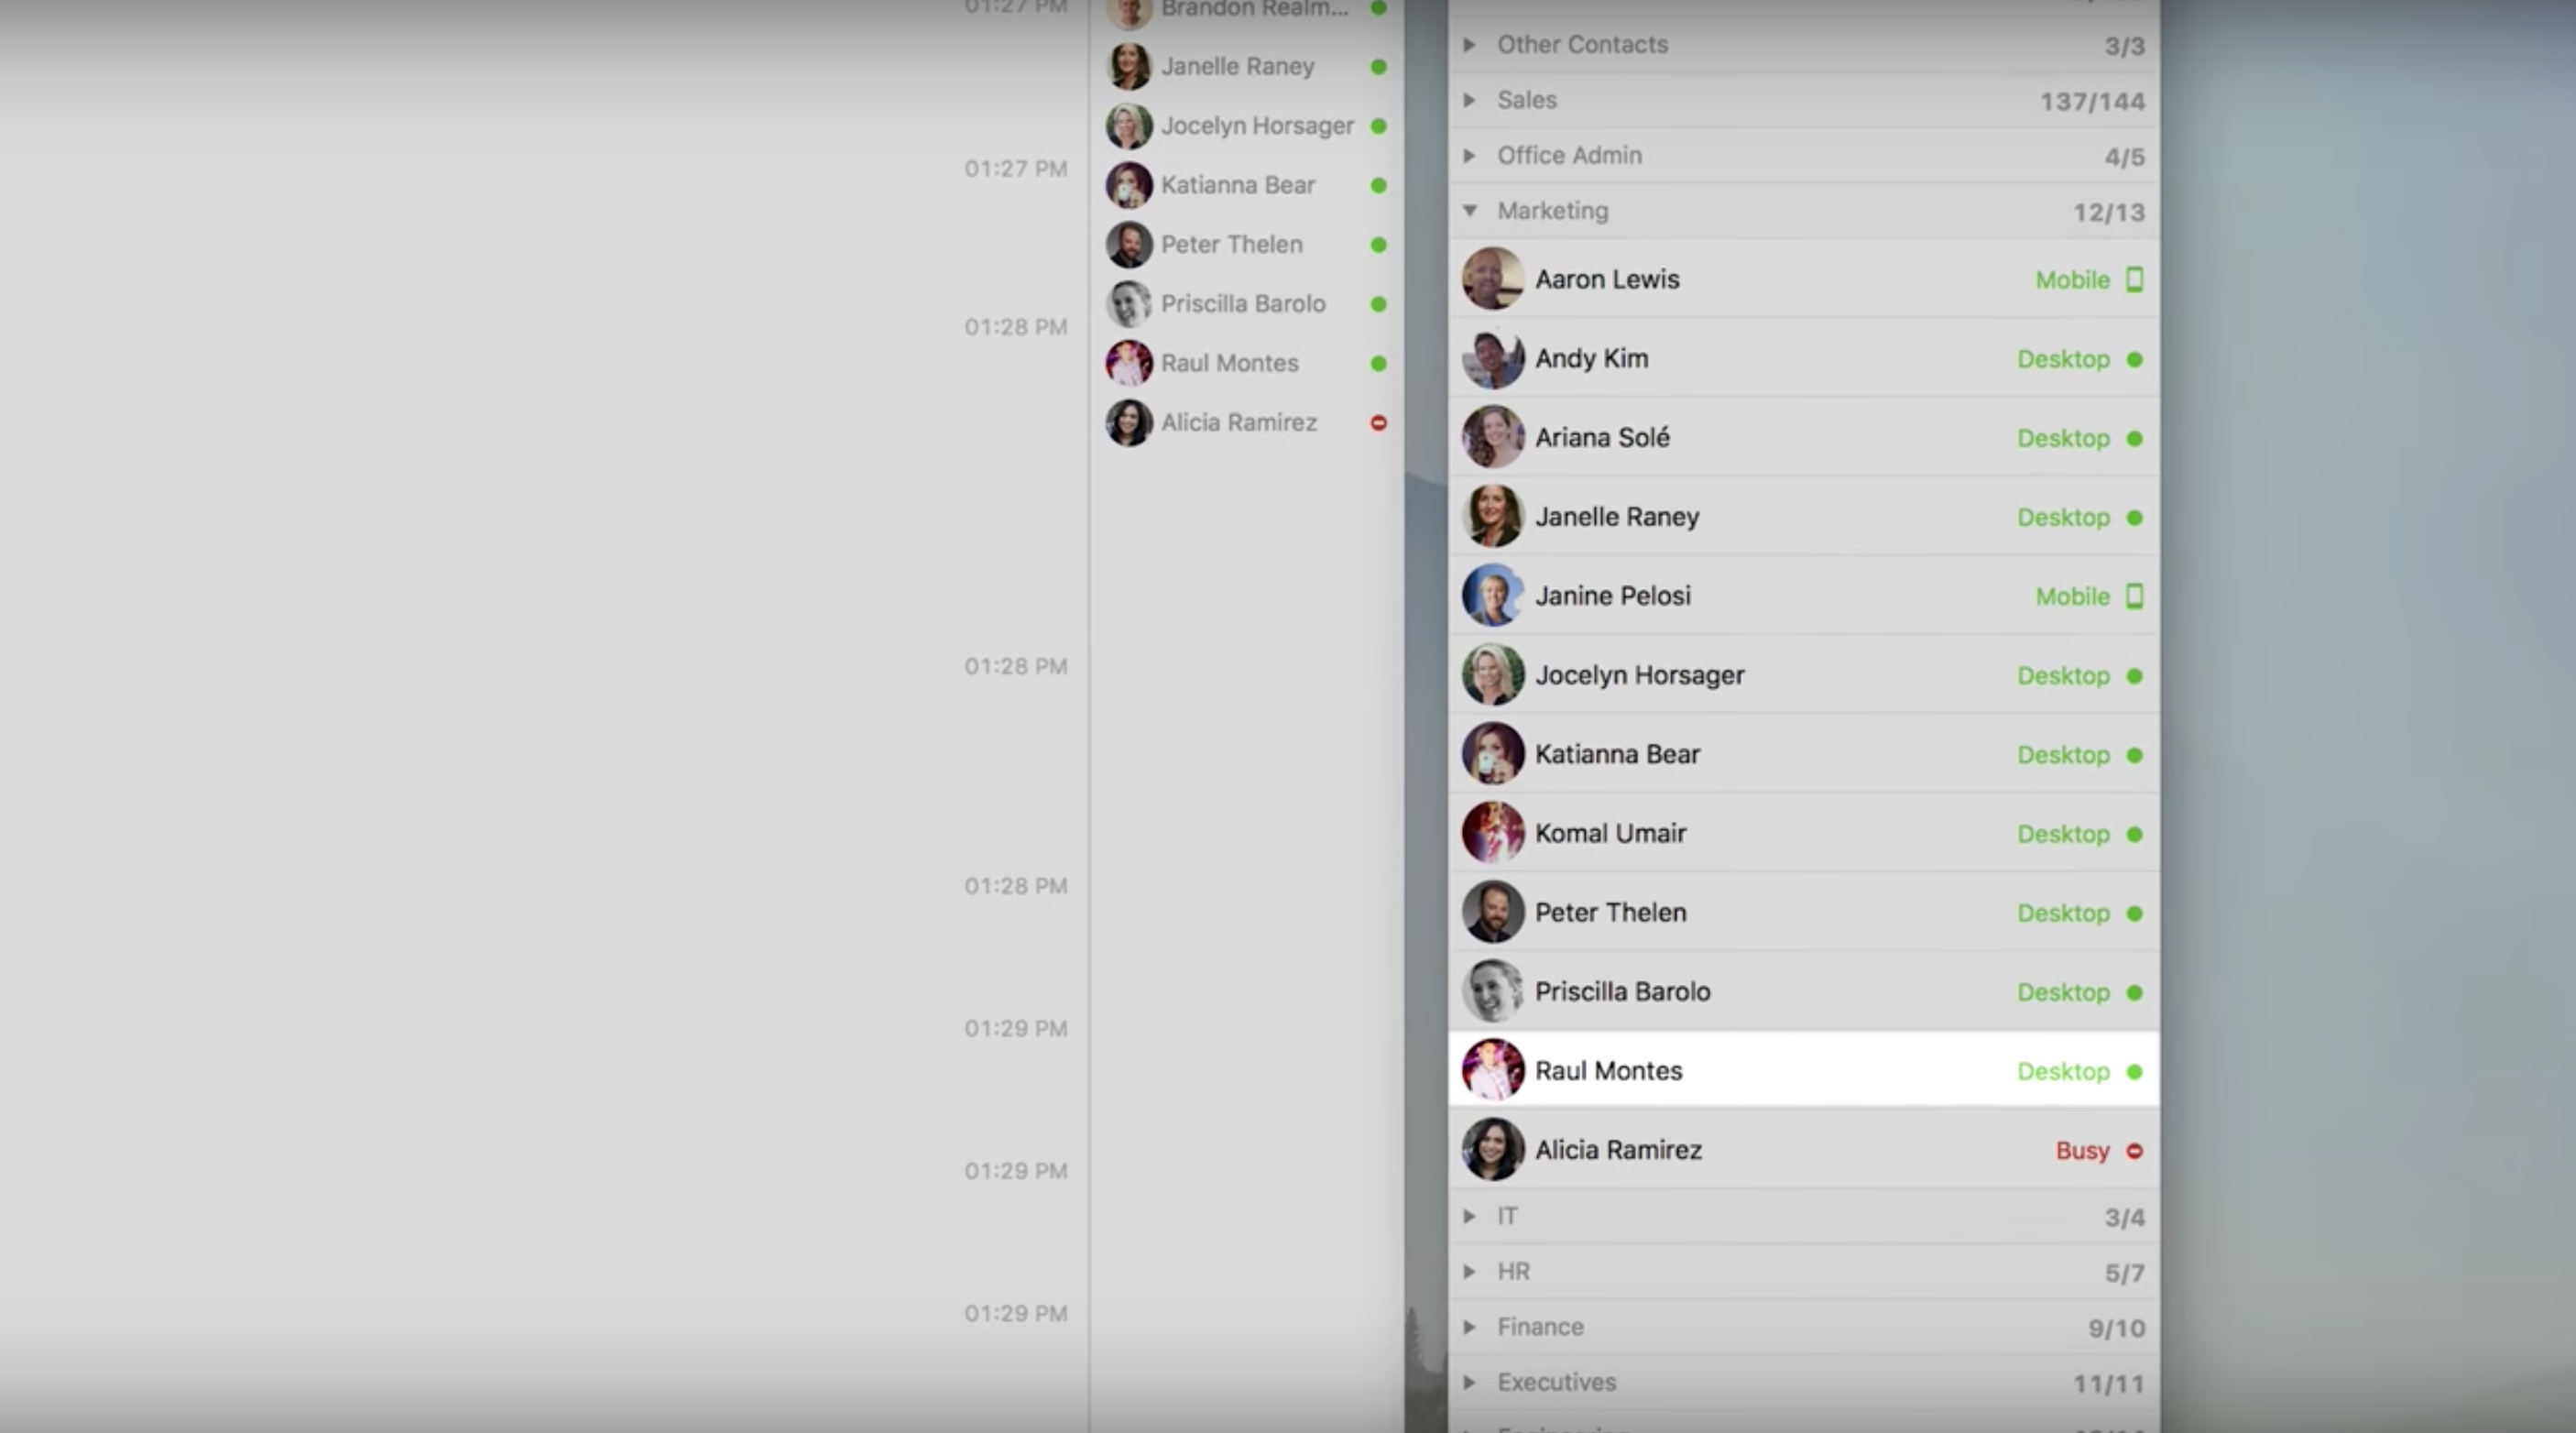 """Zoom Meetings & Chat screenshot: """"Presence Status"""" in Zoom's Business IM indicates when users are available or busy, as well as which device they're on (desktop or mobile)"""